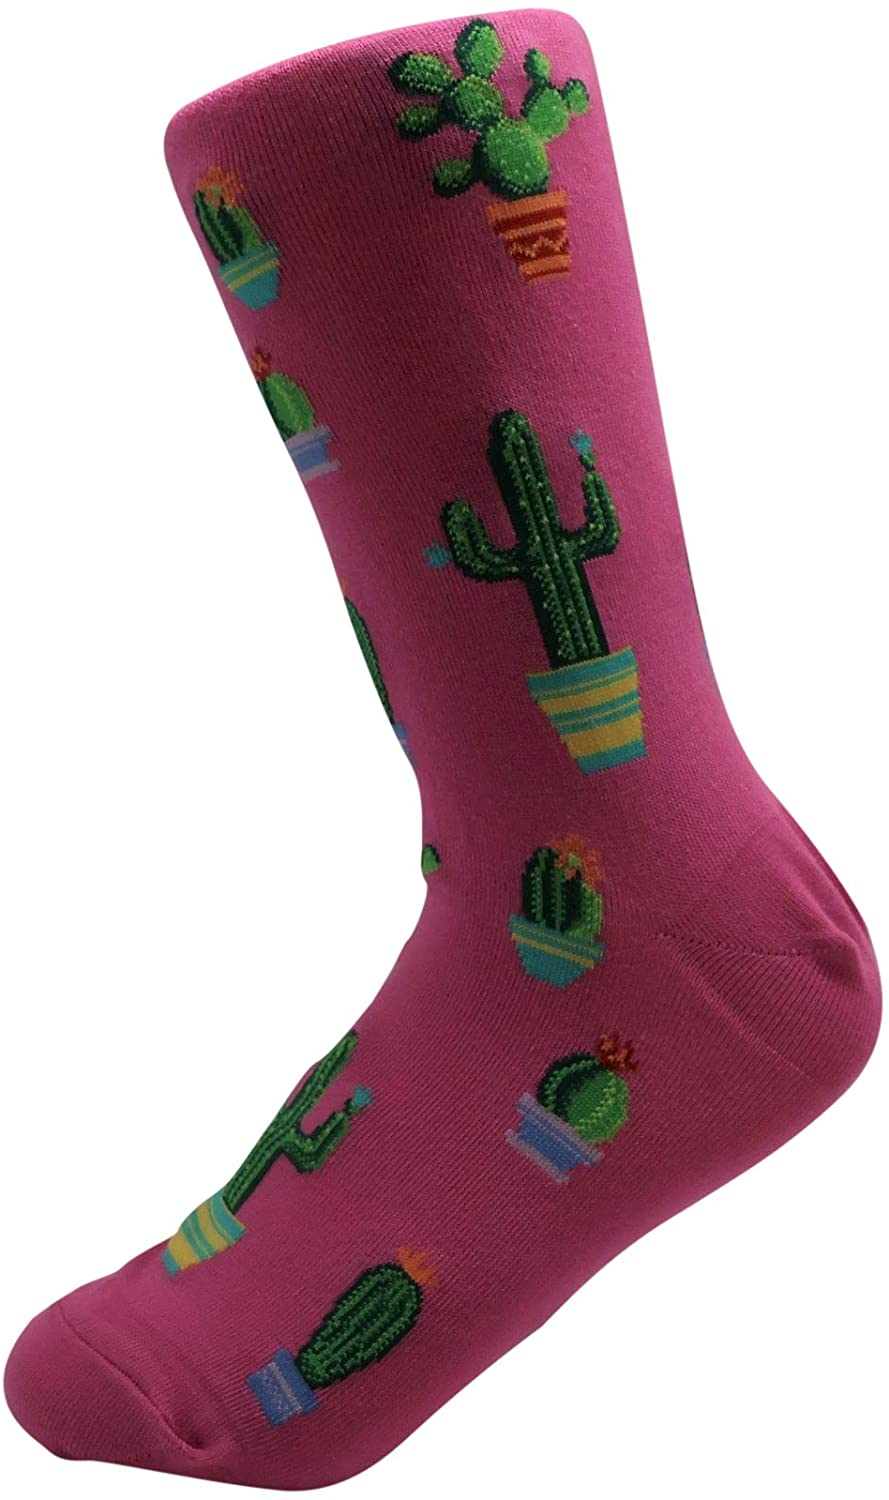 Women's Crew Cut Socks, Fun and Unique Graphic Socks, One Size Fits Most